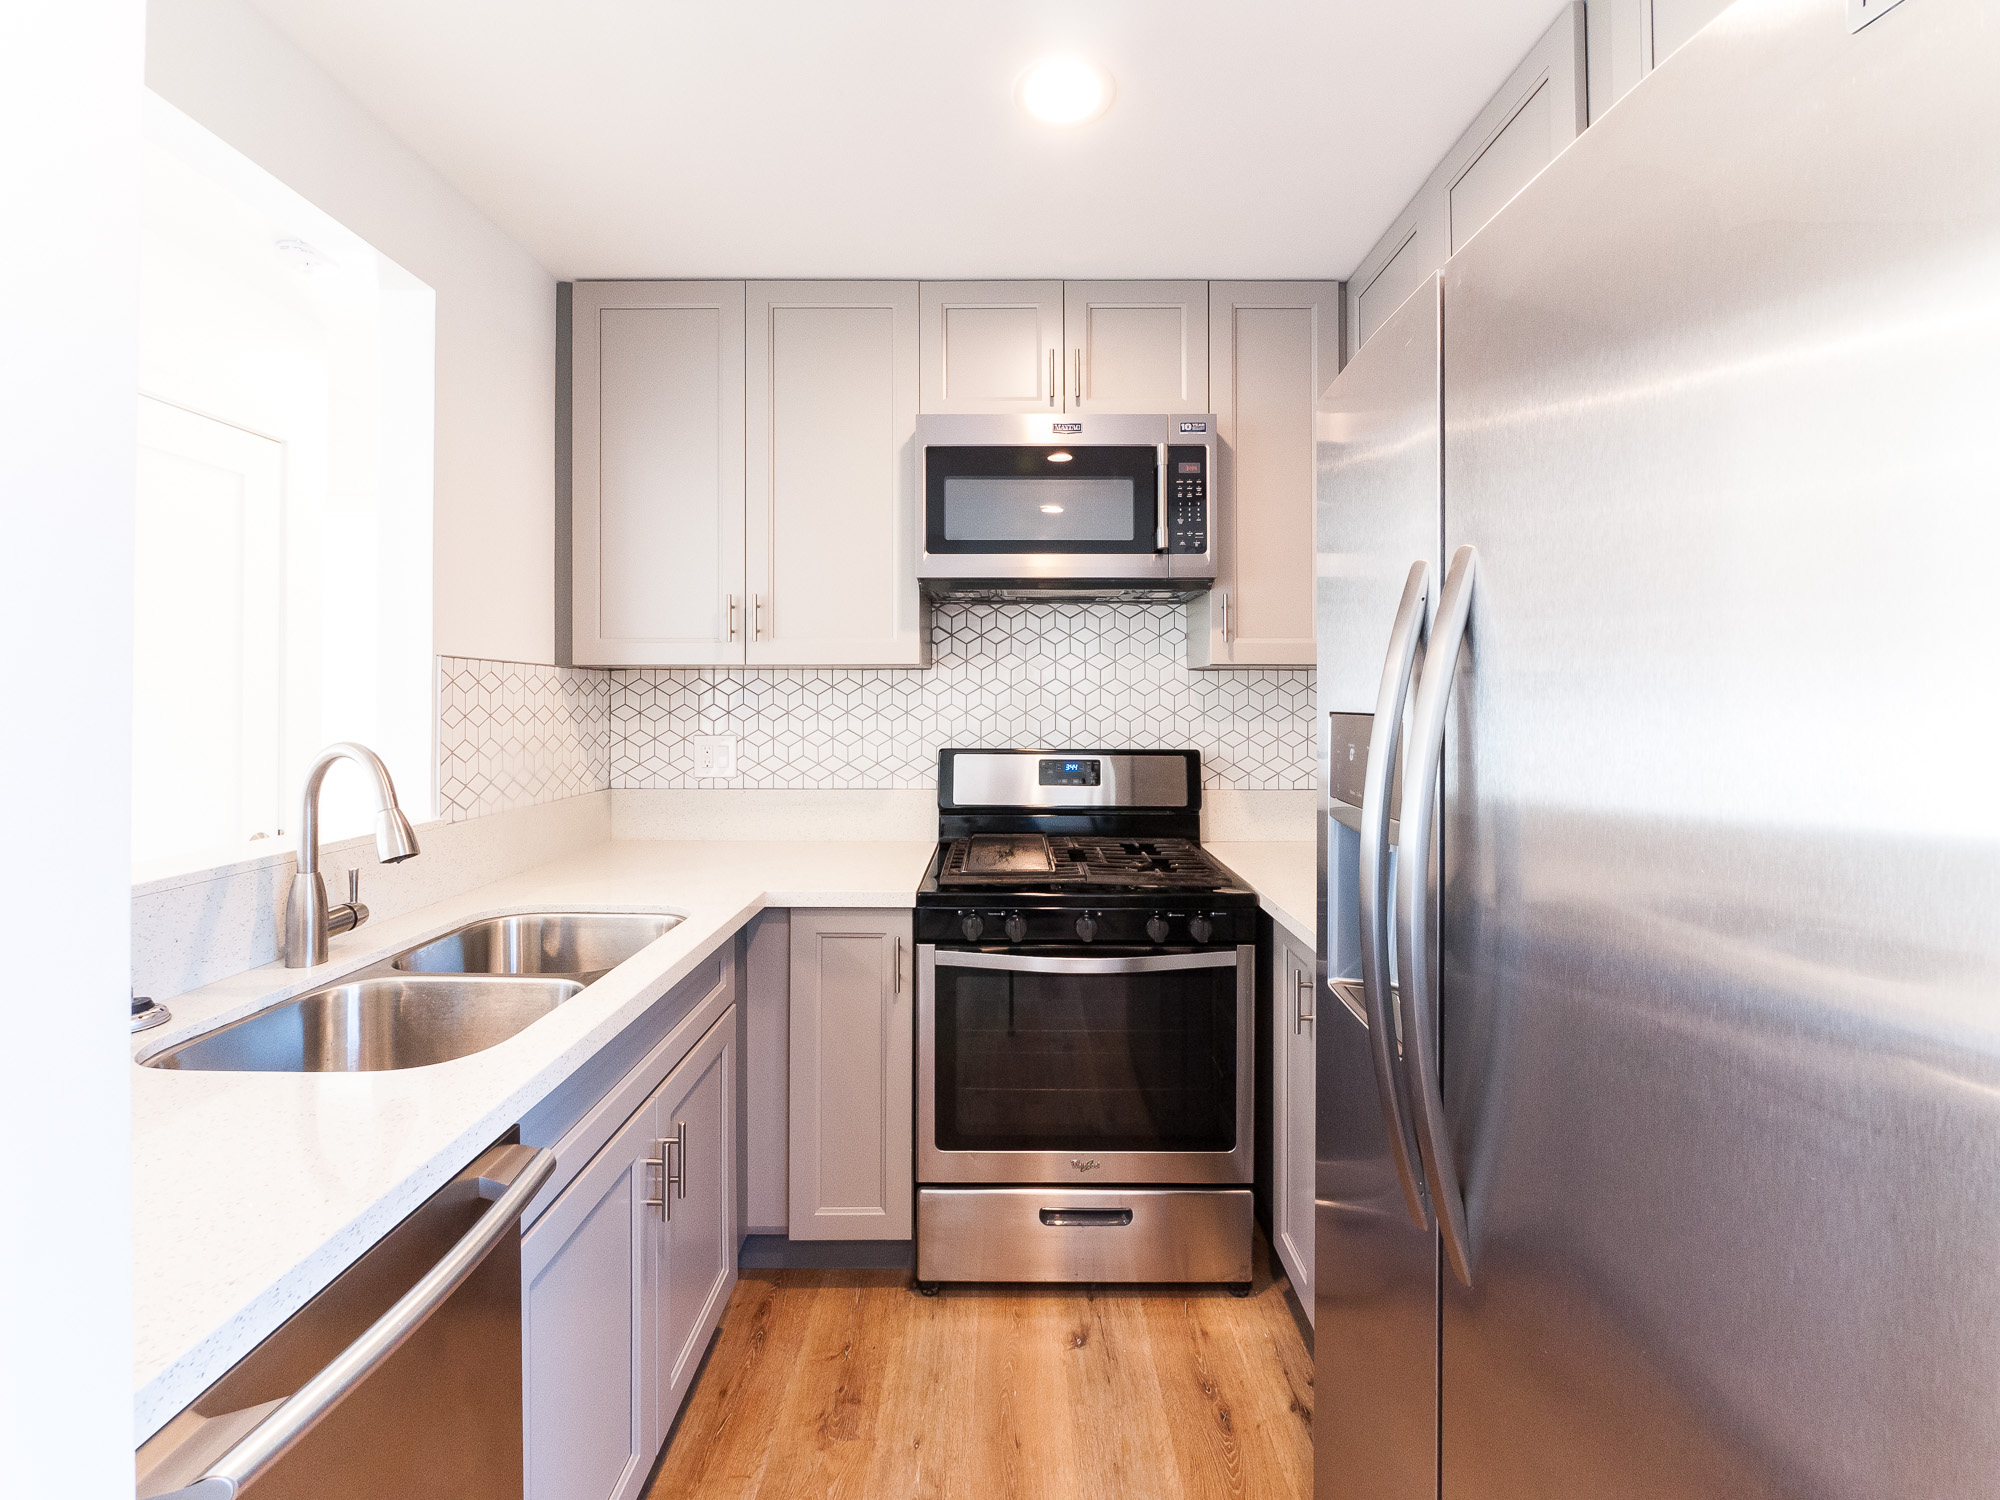 Fully Upgraded 2 Bed/ 1 Bath In Highland Park| Prime Location | 2 Parking Spaces | Coming Soon!